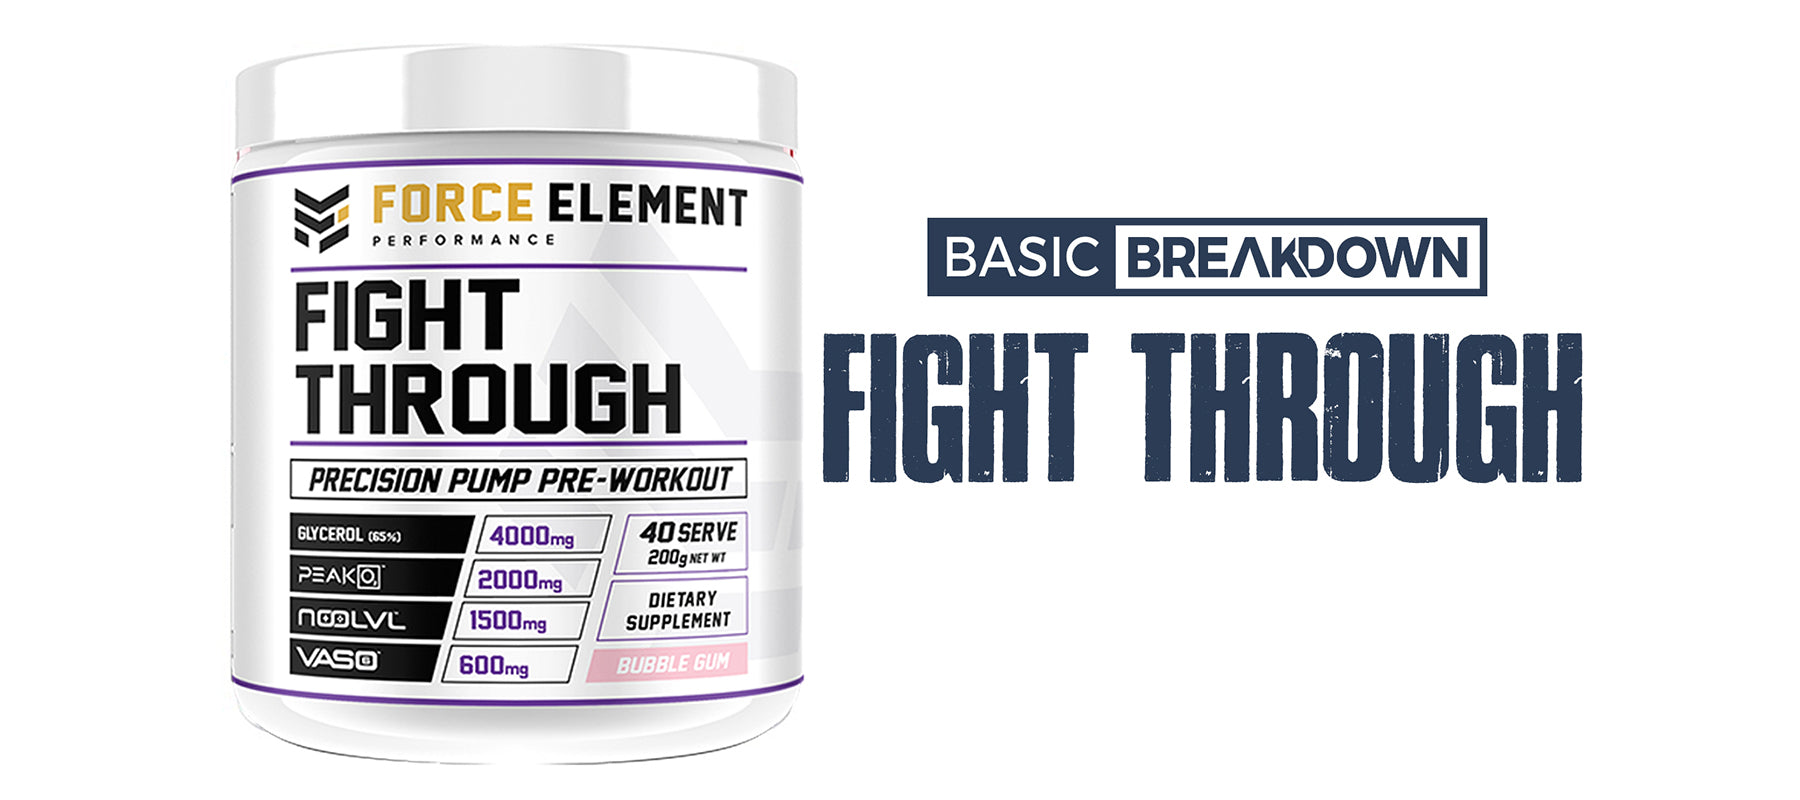 Force Element Fight Through Pump Supplement Review | Basic Breakdown